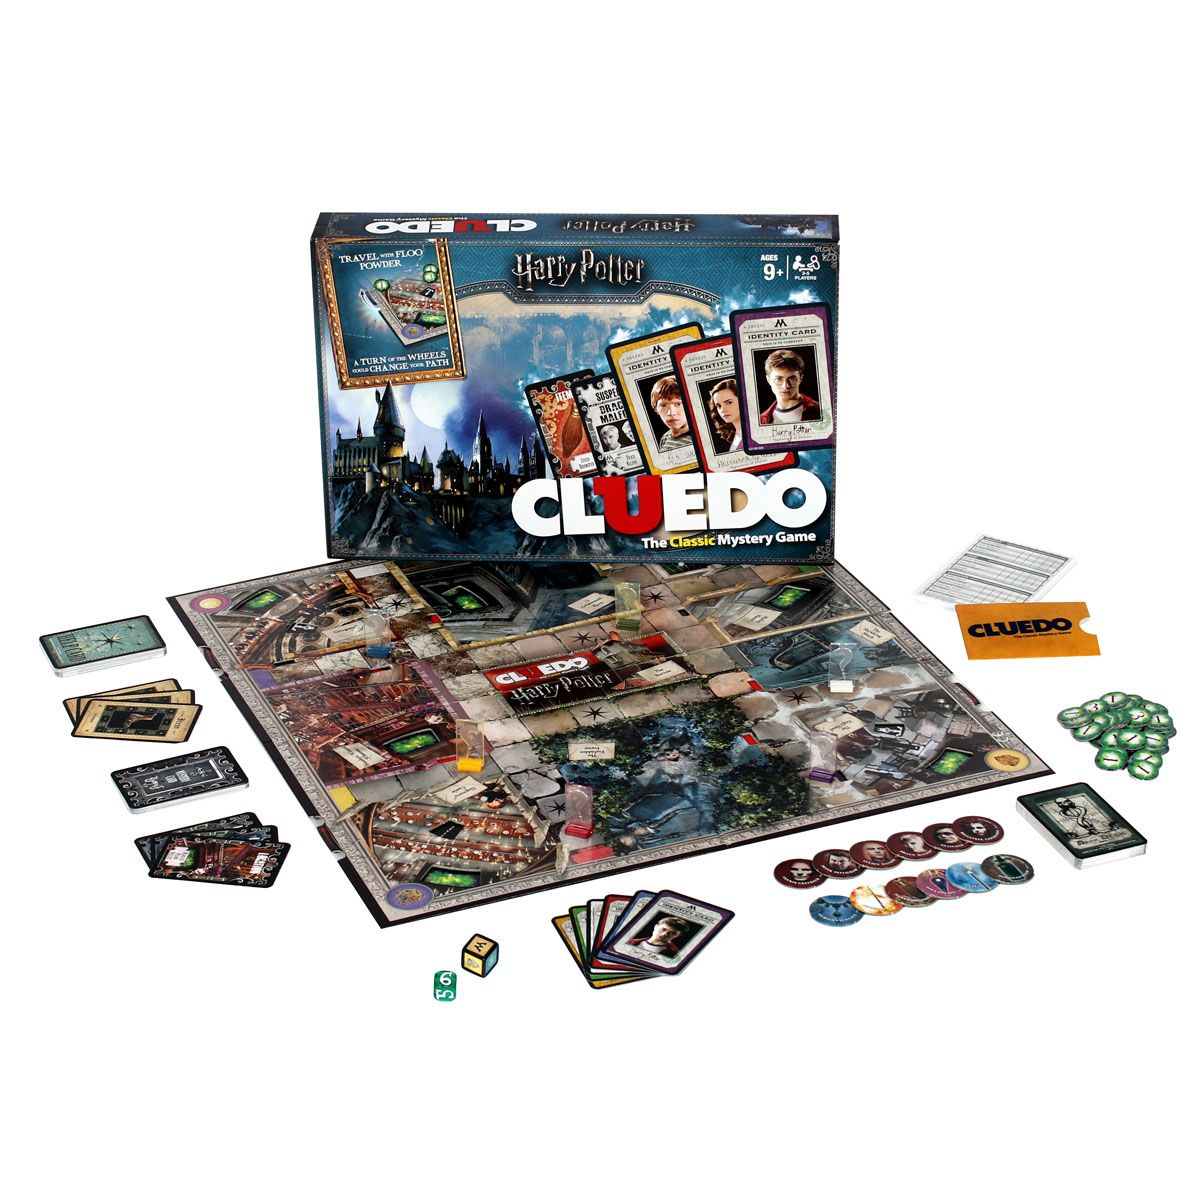 Buy Harry Potter Cluedo Mystery Board Game on Board Game